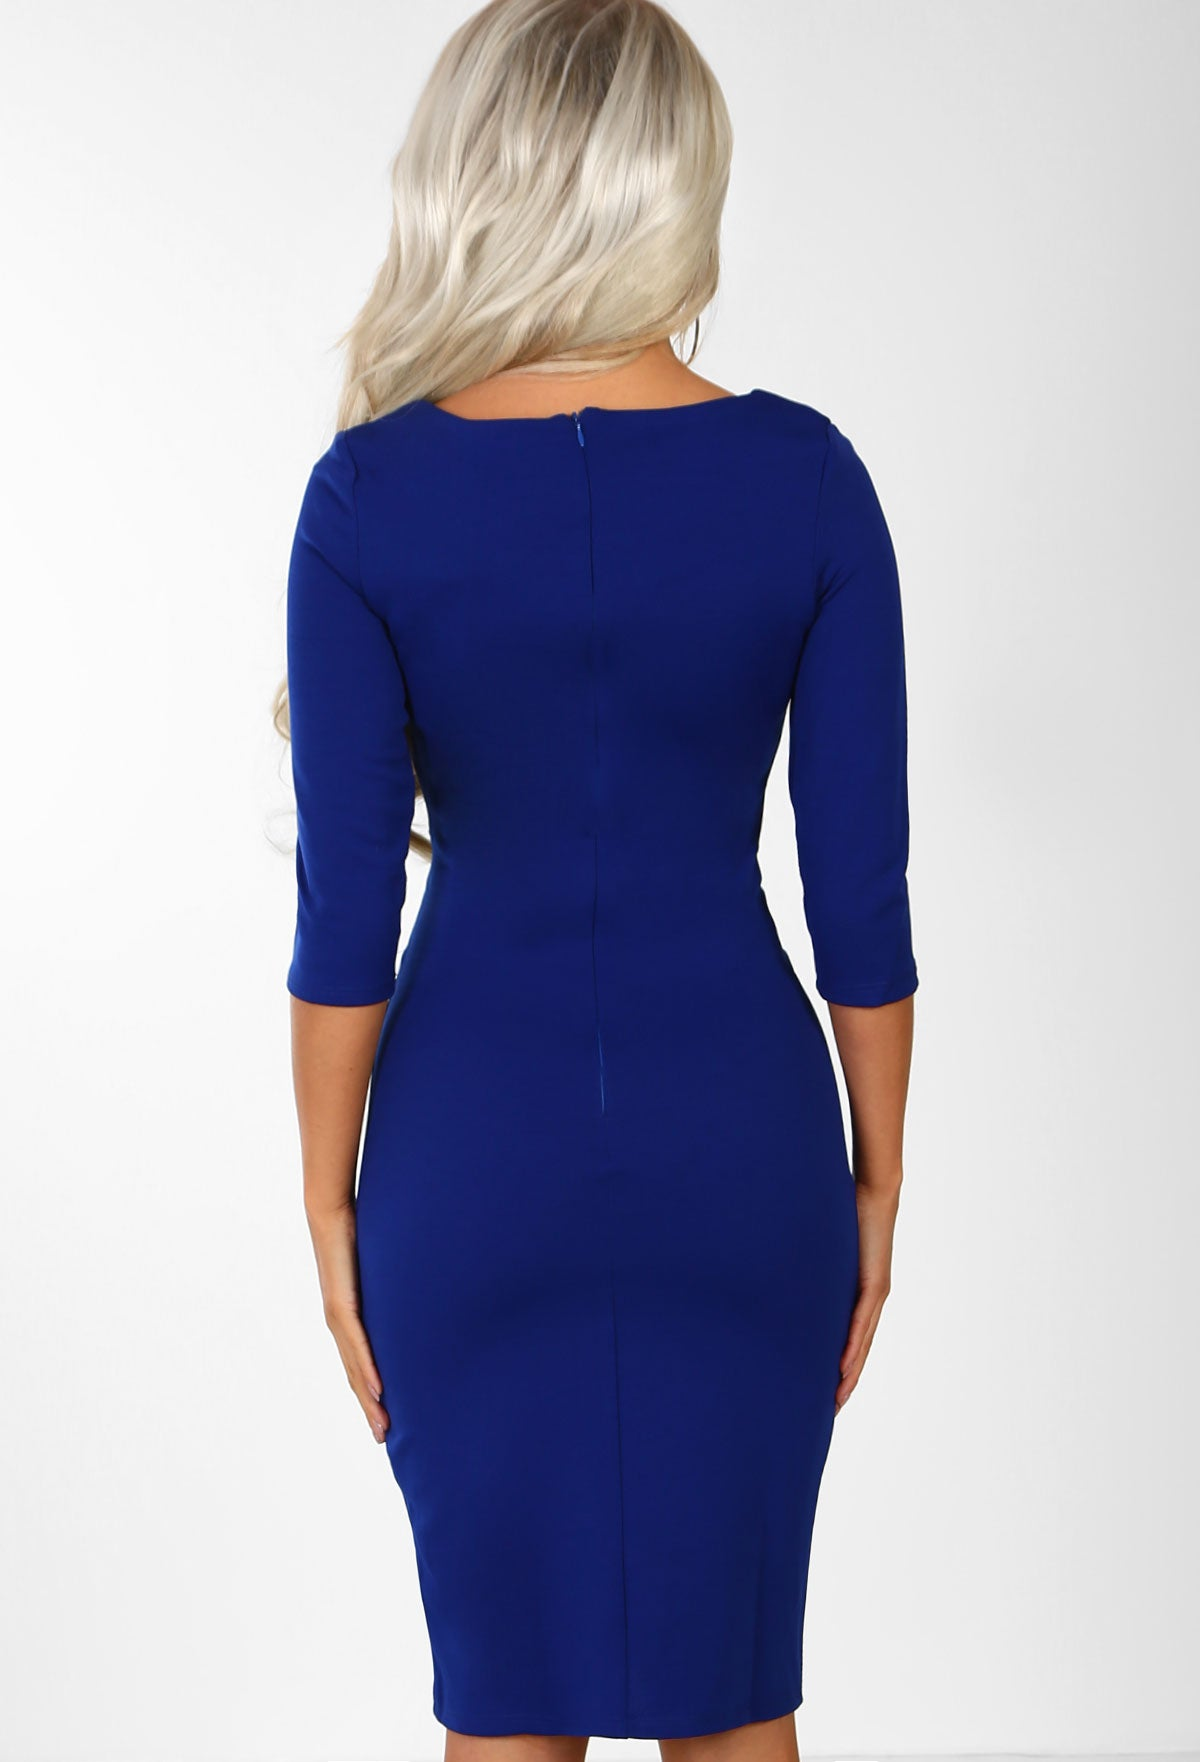 0d9a819f0eeff Fool For You Royal Blue Belted Bodycon Midi Dress – Pink Boutique UK